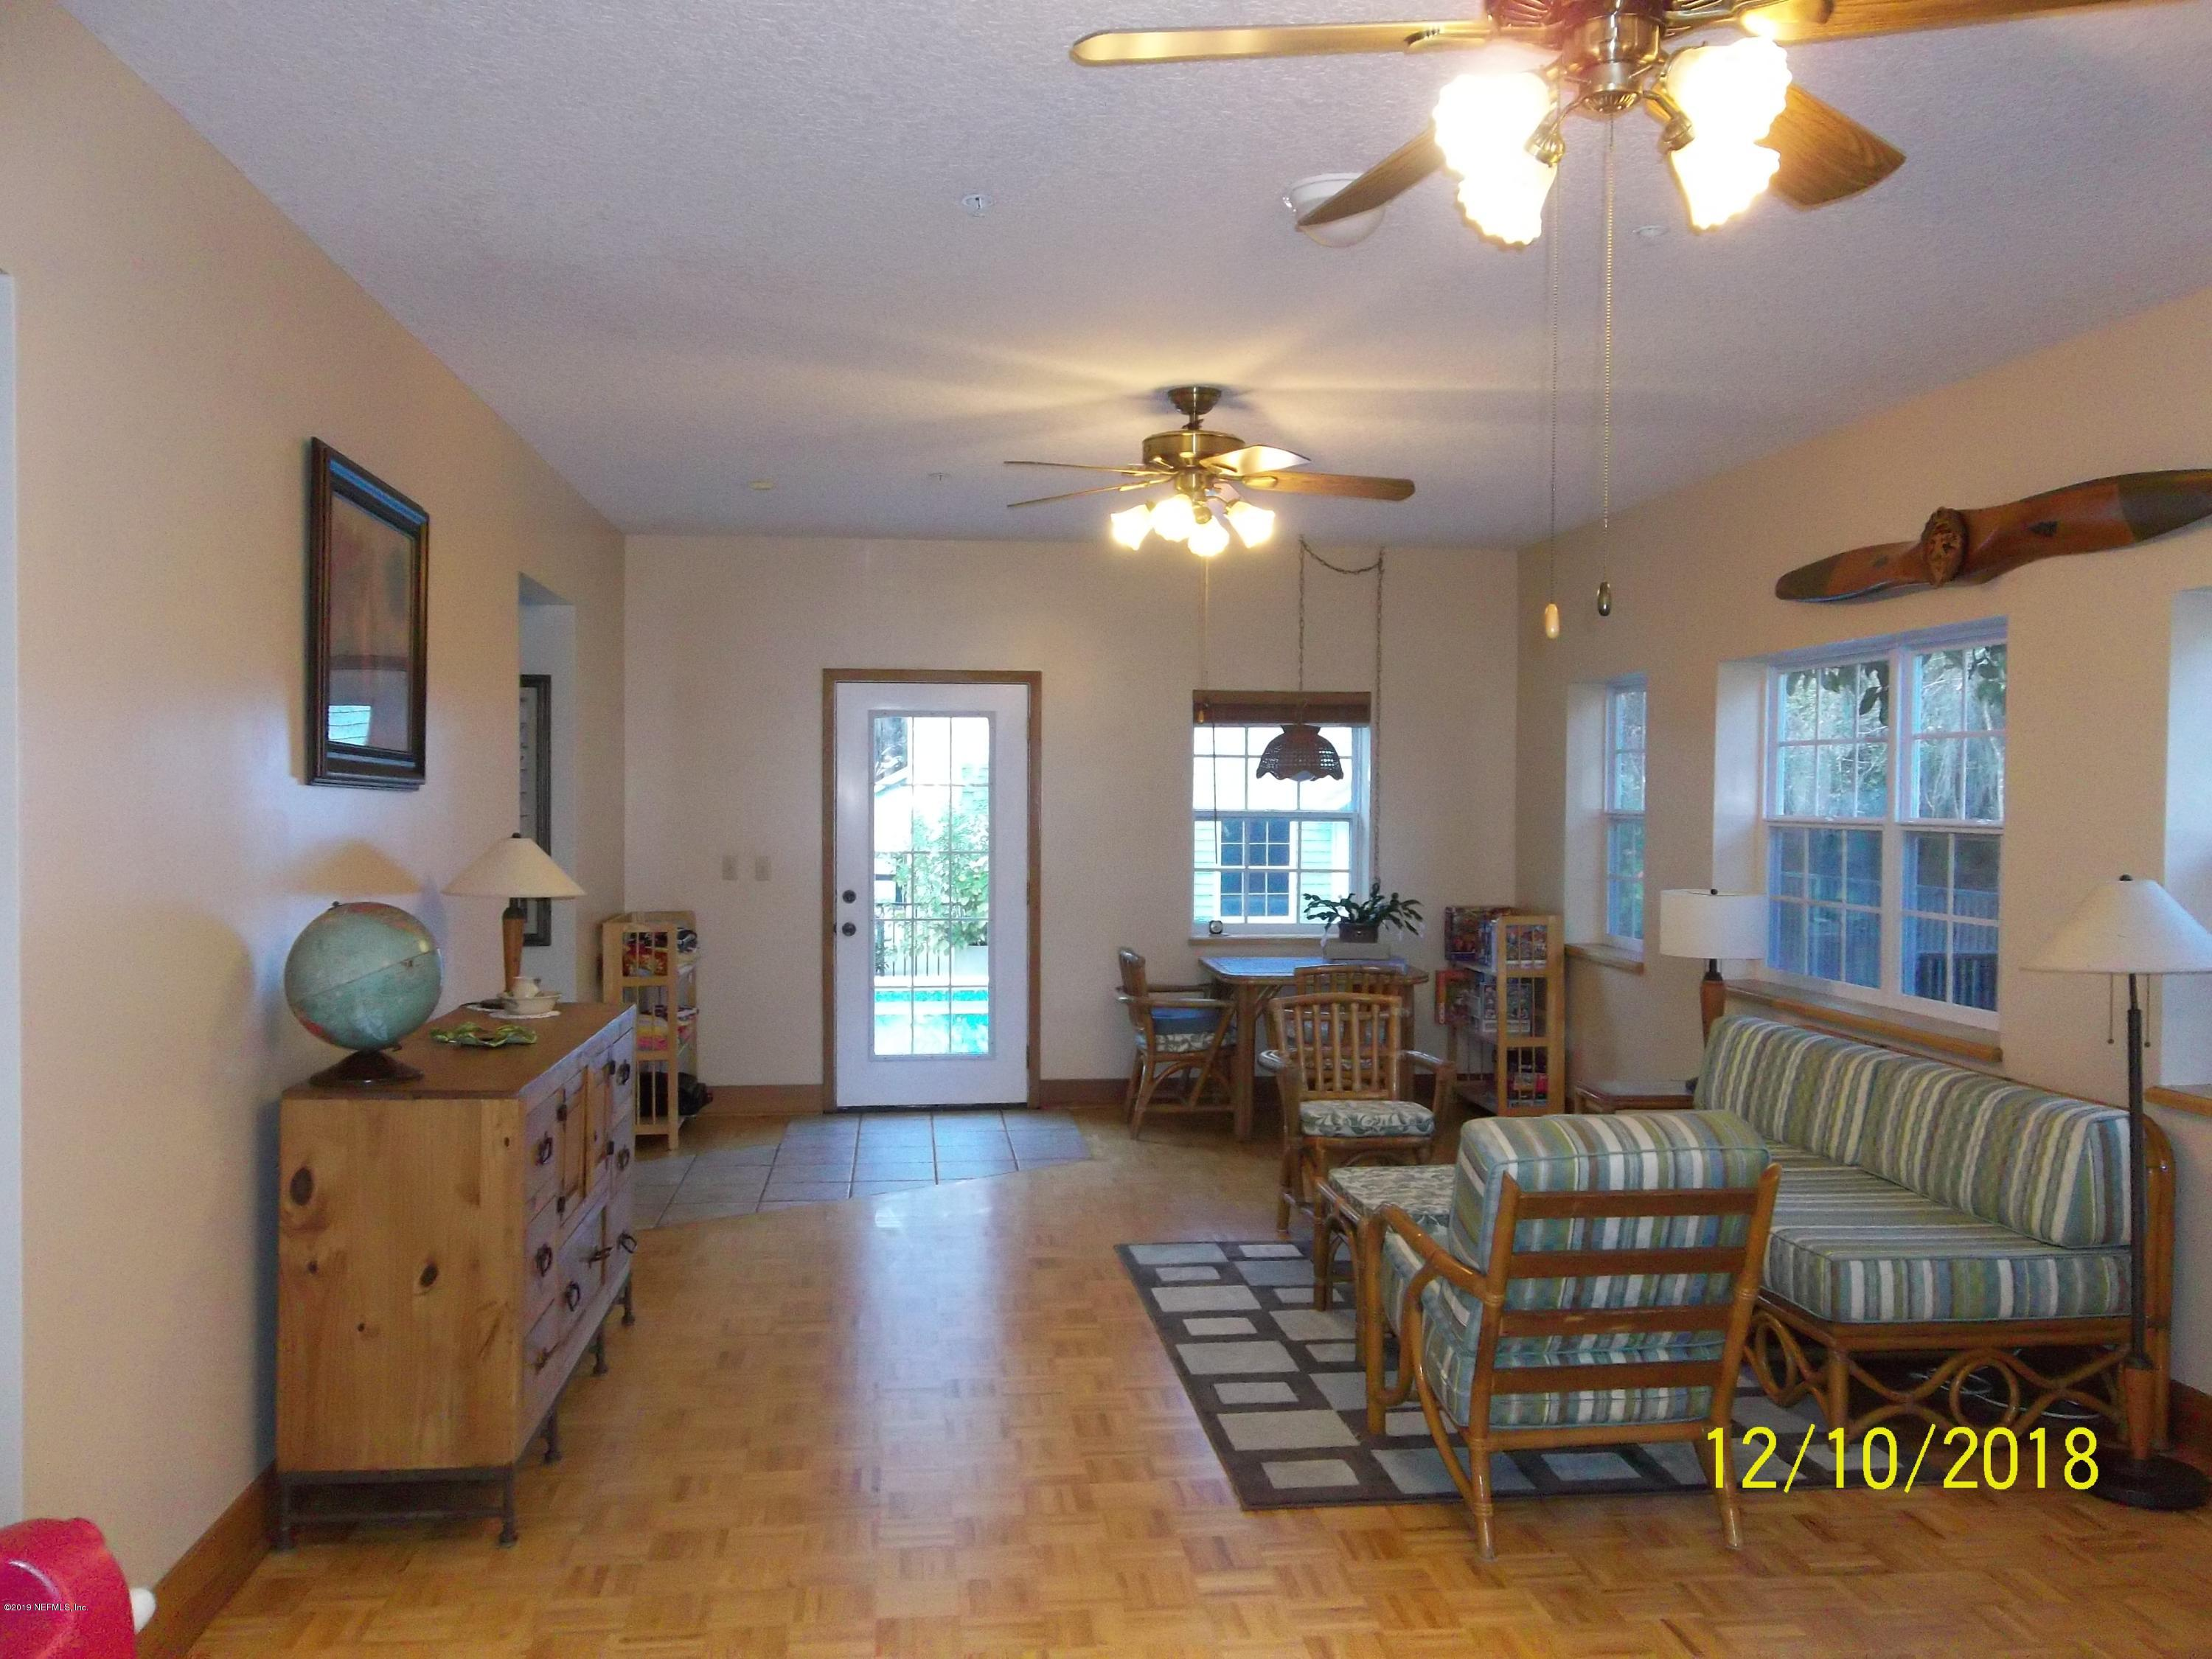 5611 DIANTHUS, GREEN COVE SPRINGS, FLORIDA 32043, 6 Bedrooms Bedrooms, ,5 BathroomsBathrooms,Residential,For sale,DIANTHUS,981450